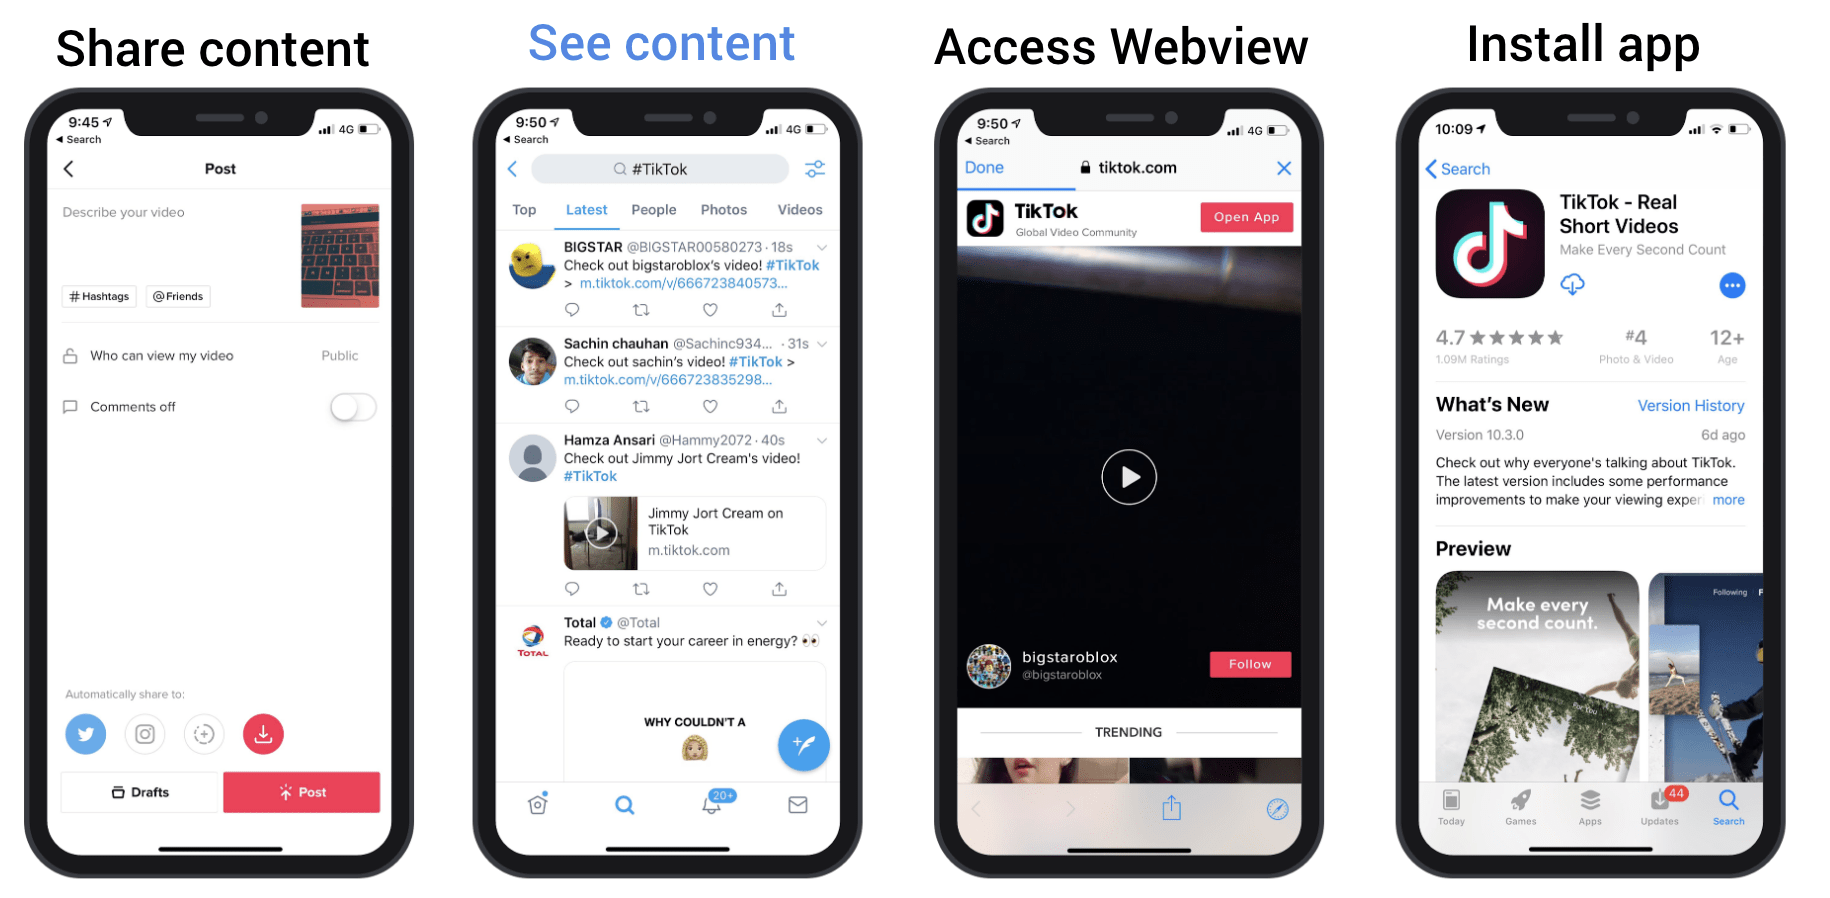 Sharing funnel for TikTok, from the content creation to the app store page